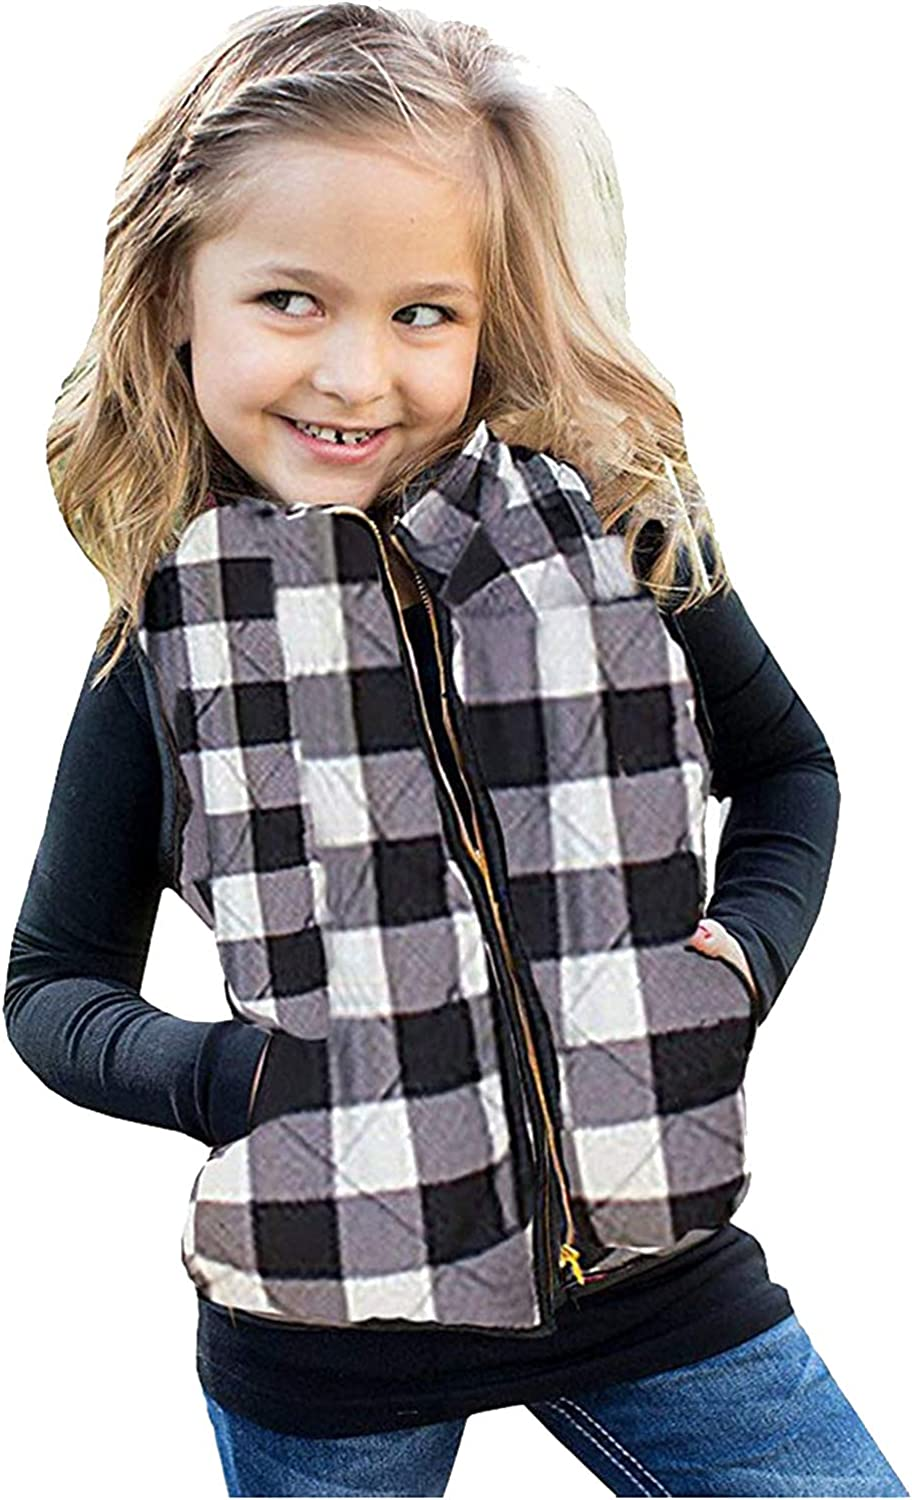 Toddler Baby Max 82% OFF Girls Boys Winter Plai Clothes Sleeveless Warm Vest specialty shop